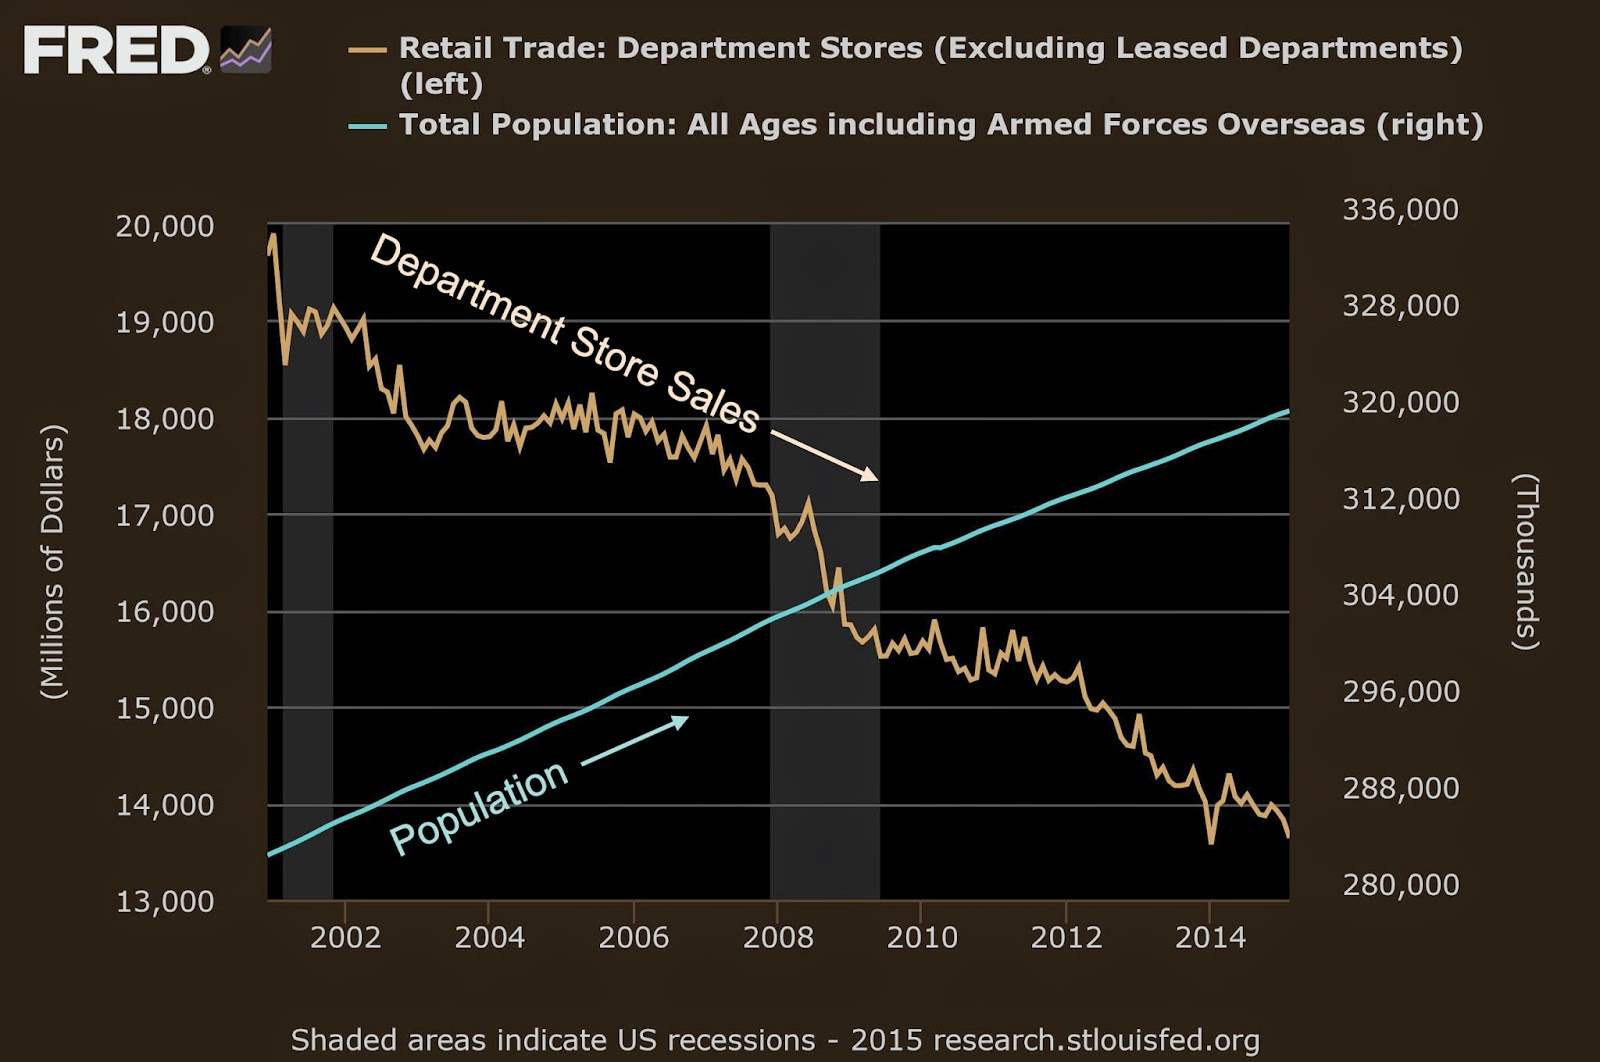 image of chart from Saint Louis, MO Federal Reserve showing a decline in Retail Sales at Department Stores compared to an increasing US population